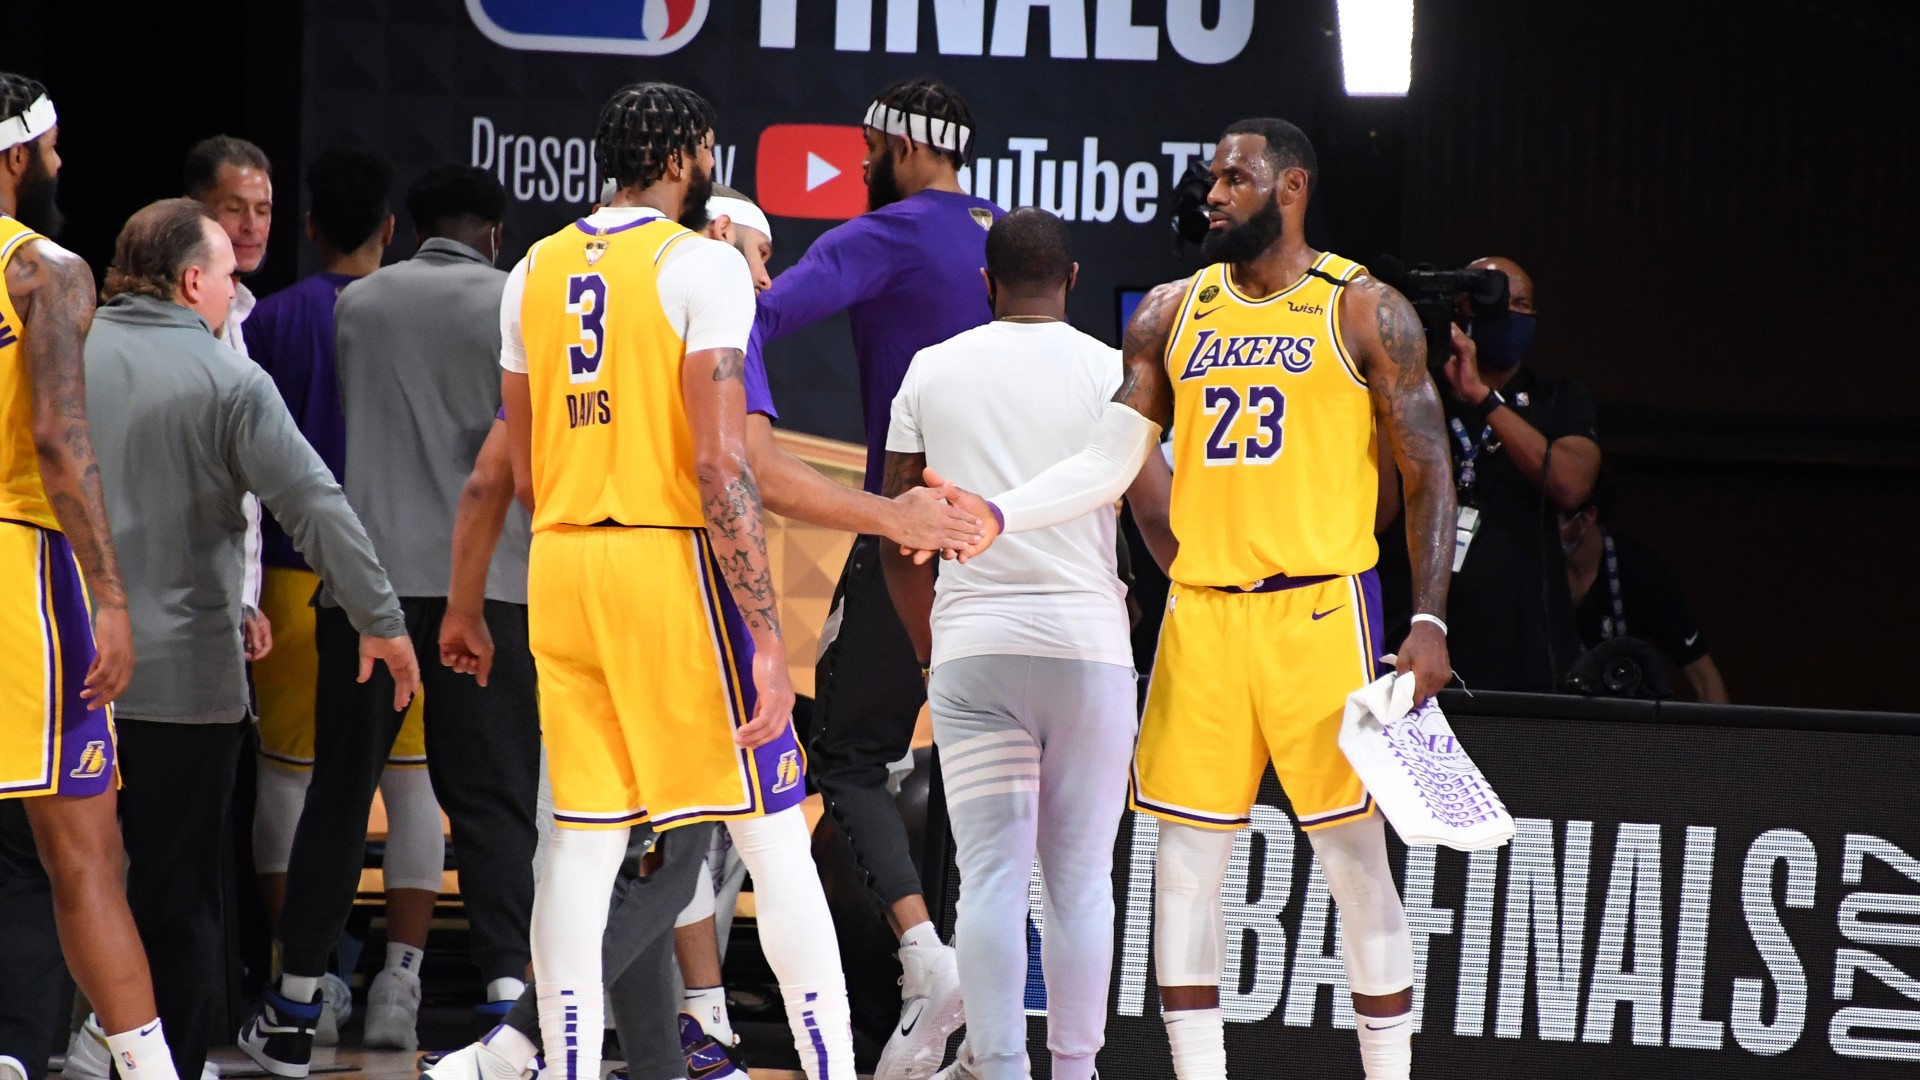 NBA Finals: James stars as Lakers move within touching distance of NBA Championship